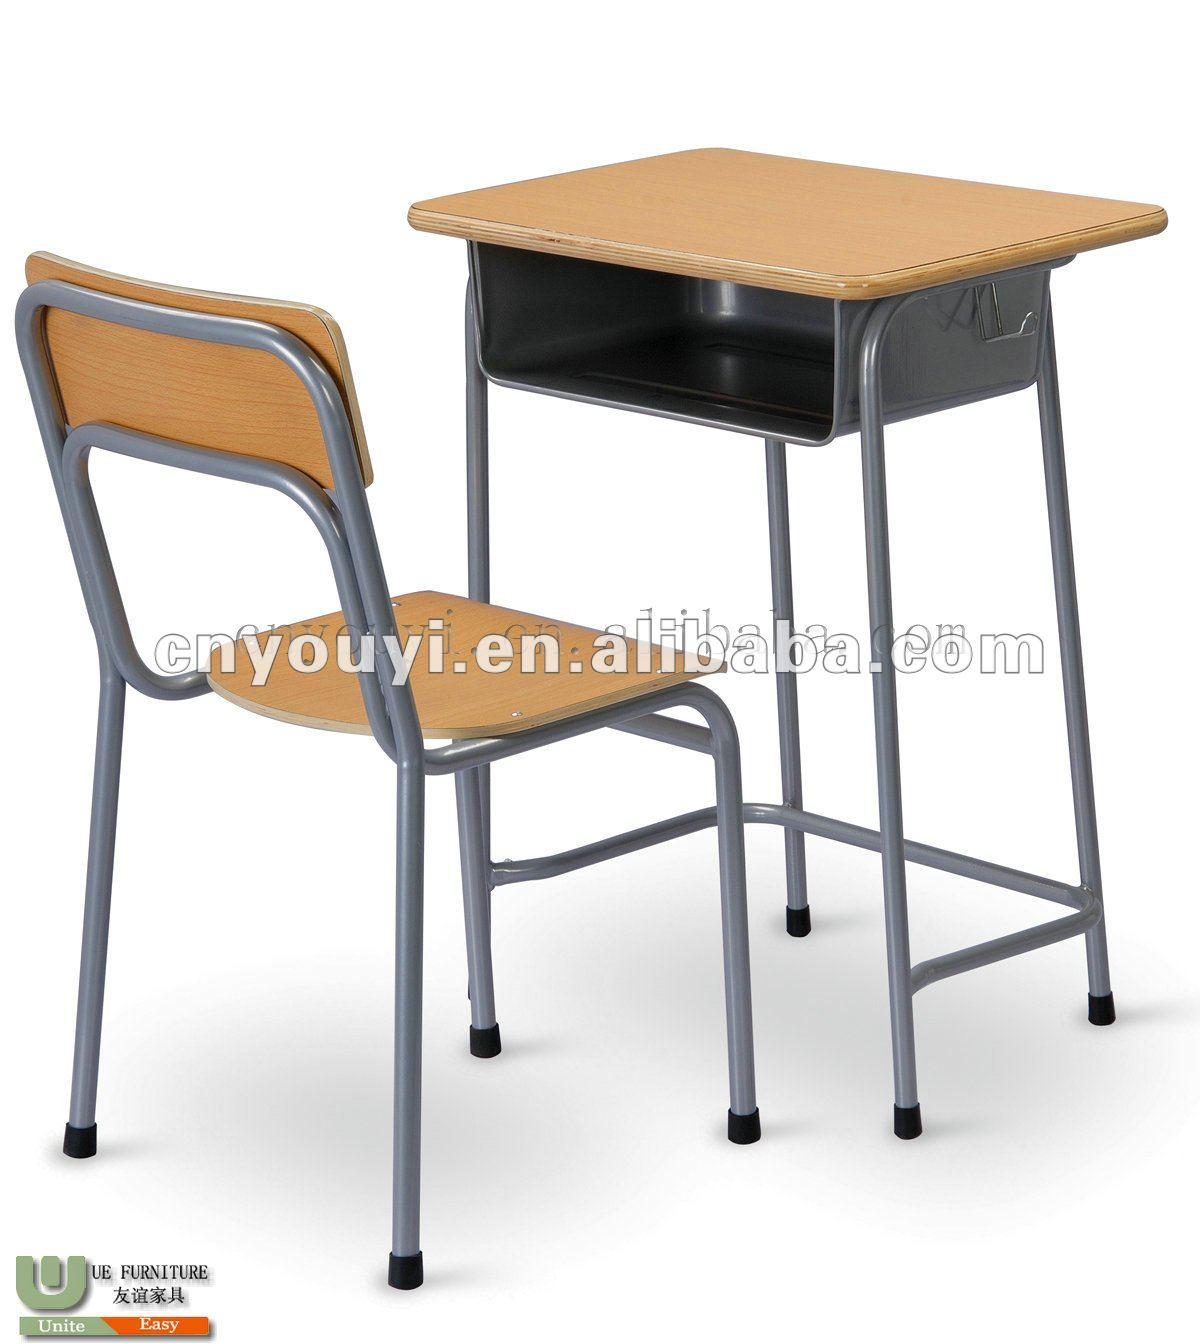 School Single Student Desk And Single Student Chair   Buy Cheap     School Single Student Desk And Single Student Chair   Buy Cheap School Desk  And Chair School Desk School Chair Product on Alibaba com